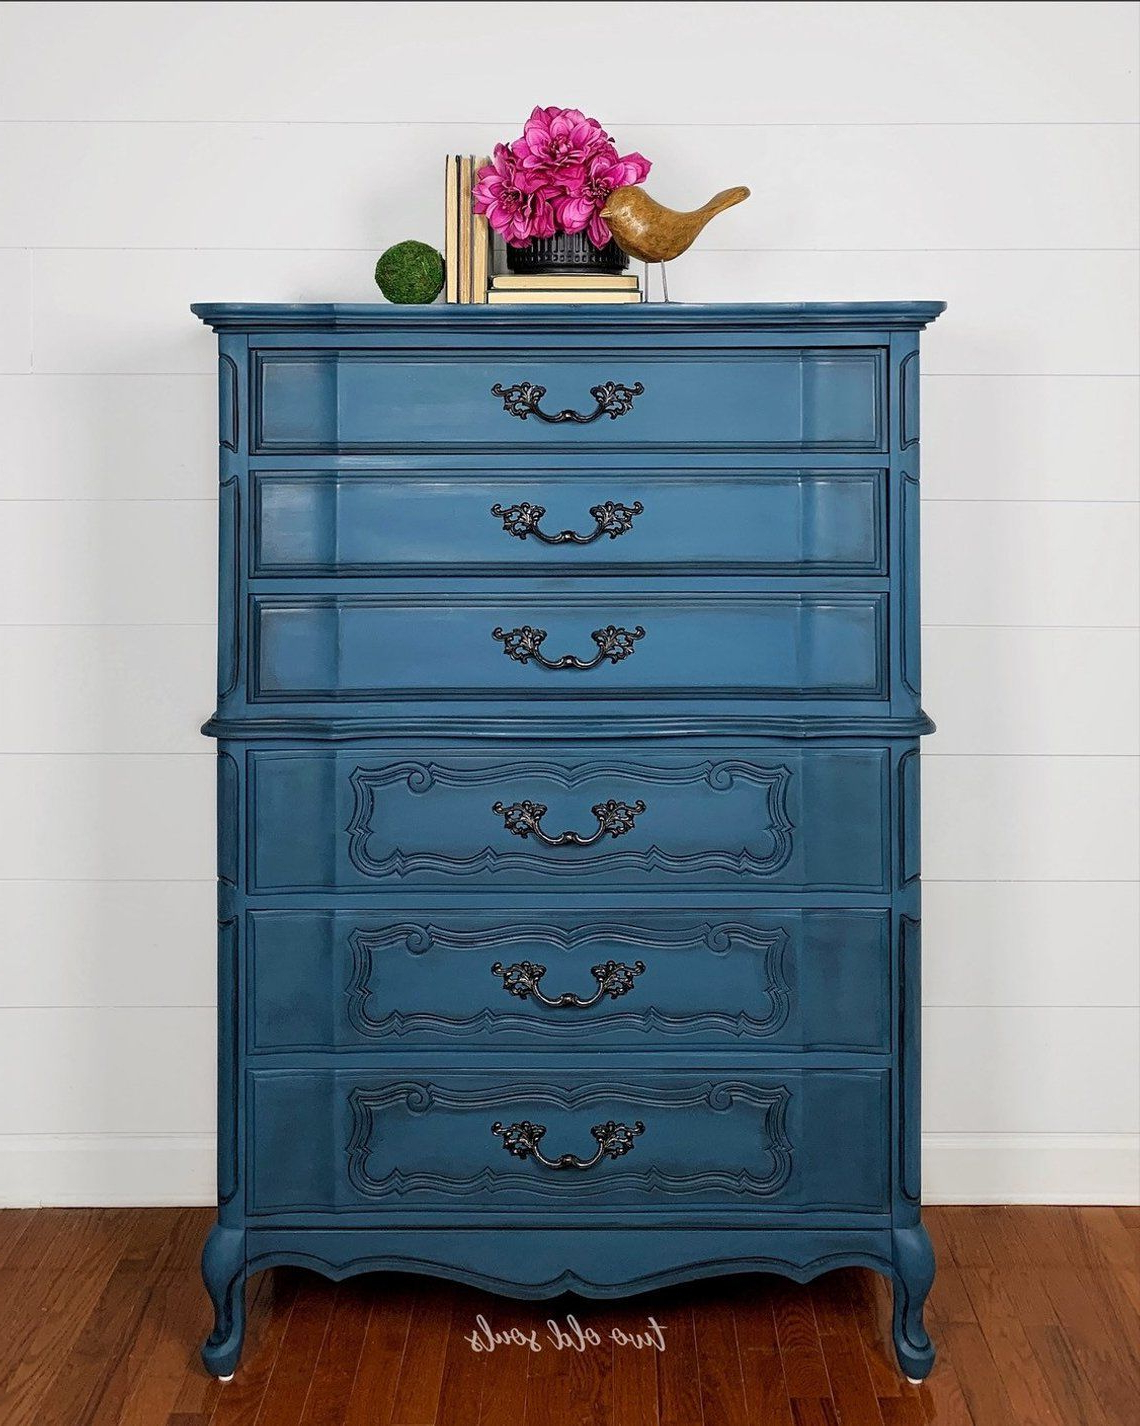 1960S French Provincial Bassett Painted Blue Oversized Regarding Pink And Navy Peaks Credenzas (Gallery 20 of 20)